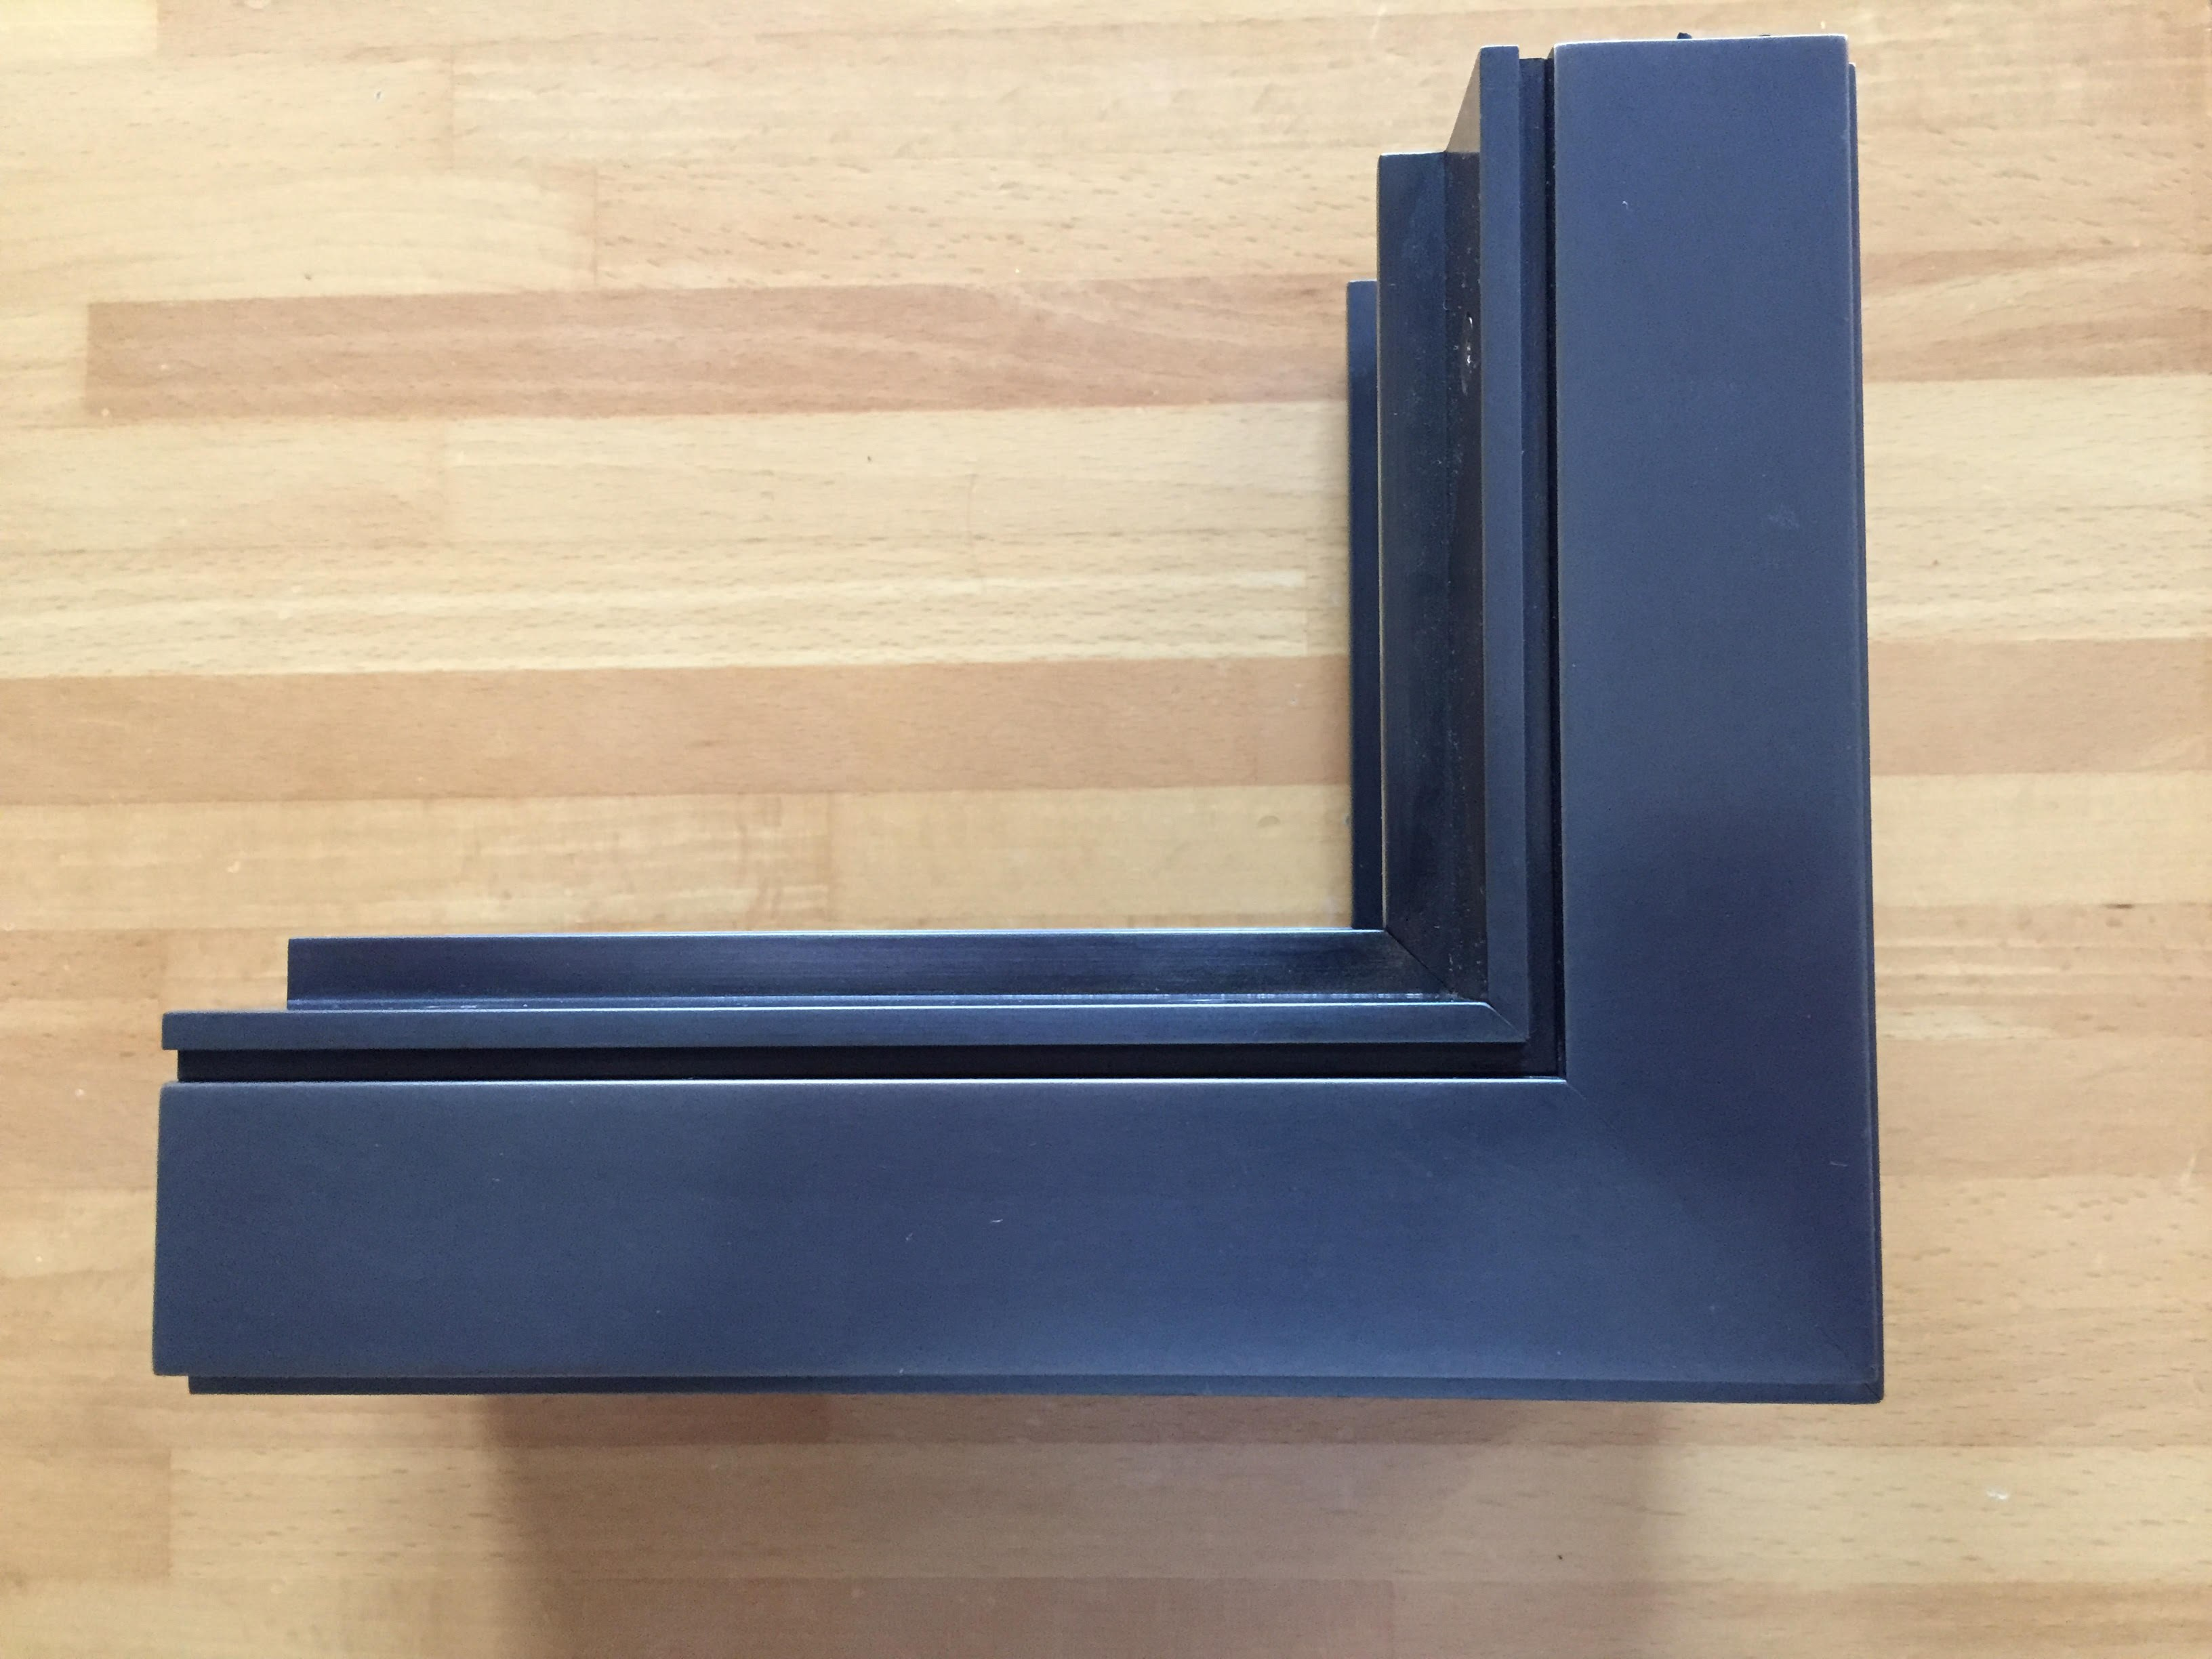 Bronze thermal break window abx d45 by pft hevo for Thermal windows